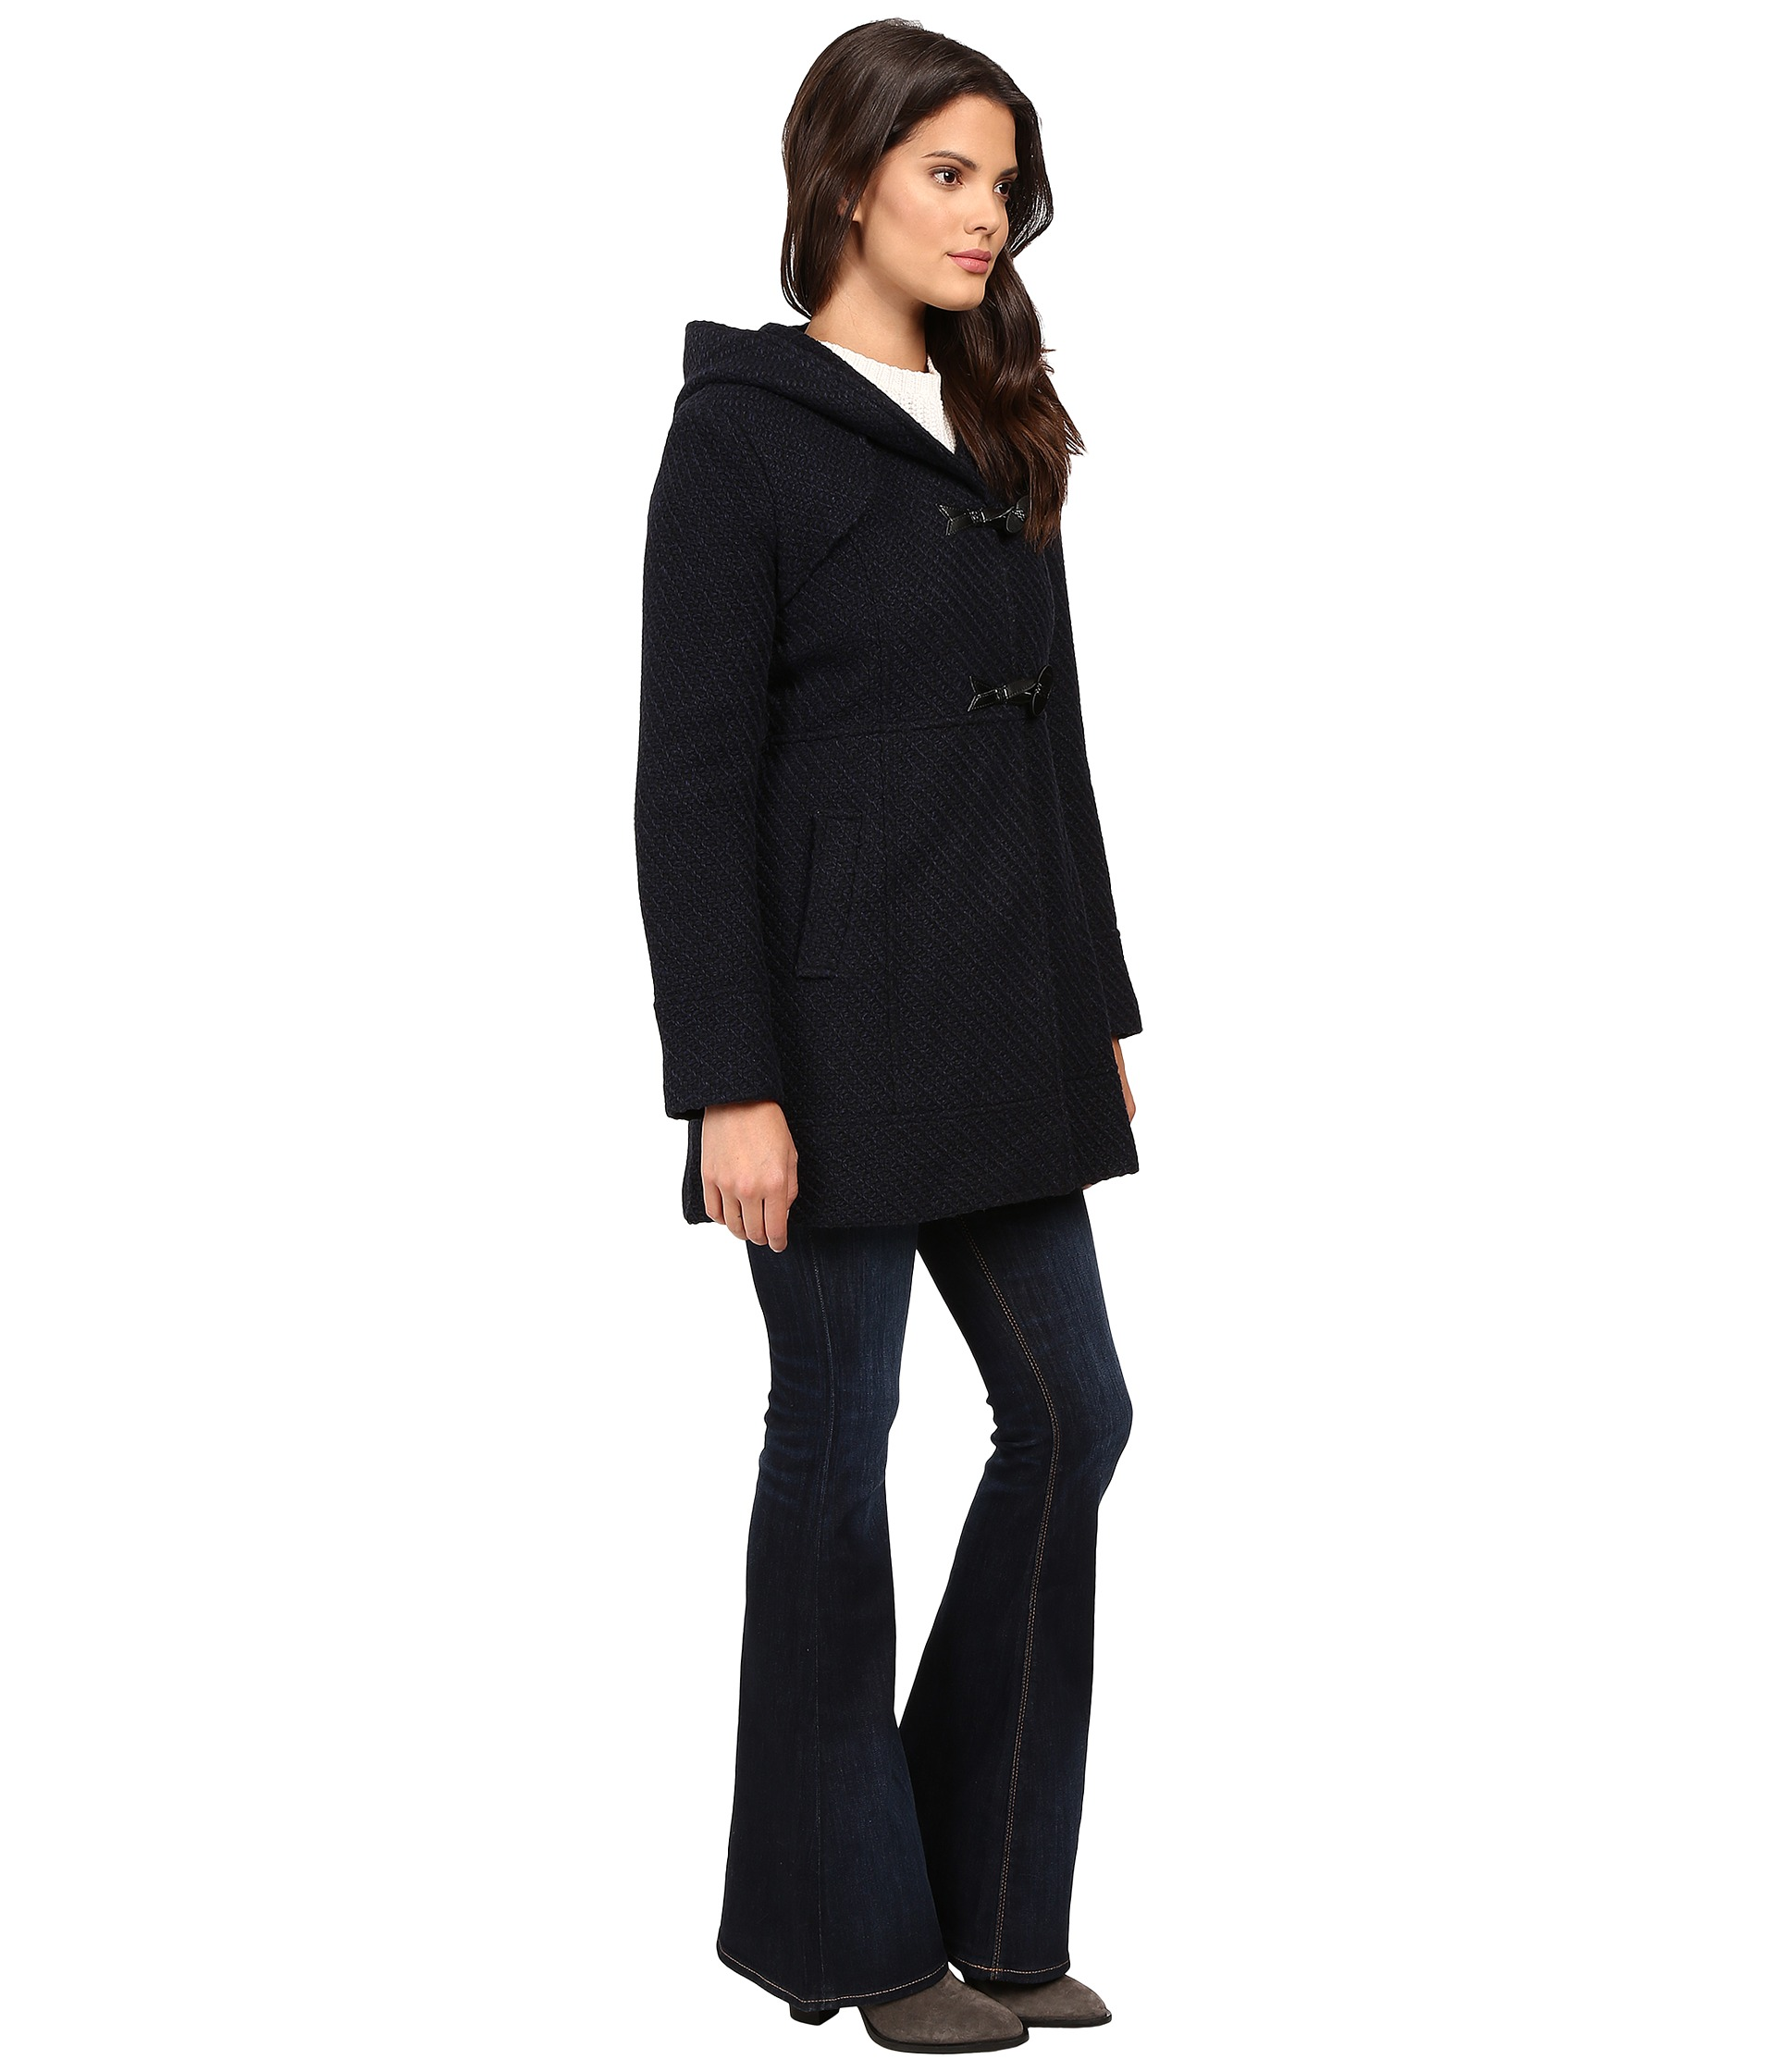 Jessica Simpson Braided Wool Duffle Coat with Hood - Zappos.com ...